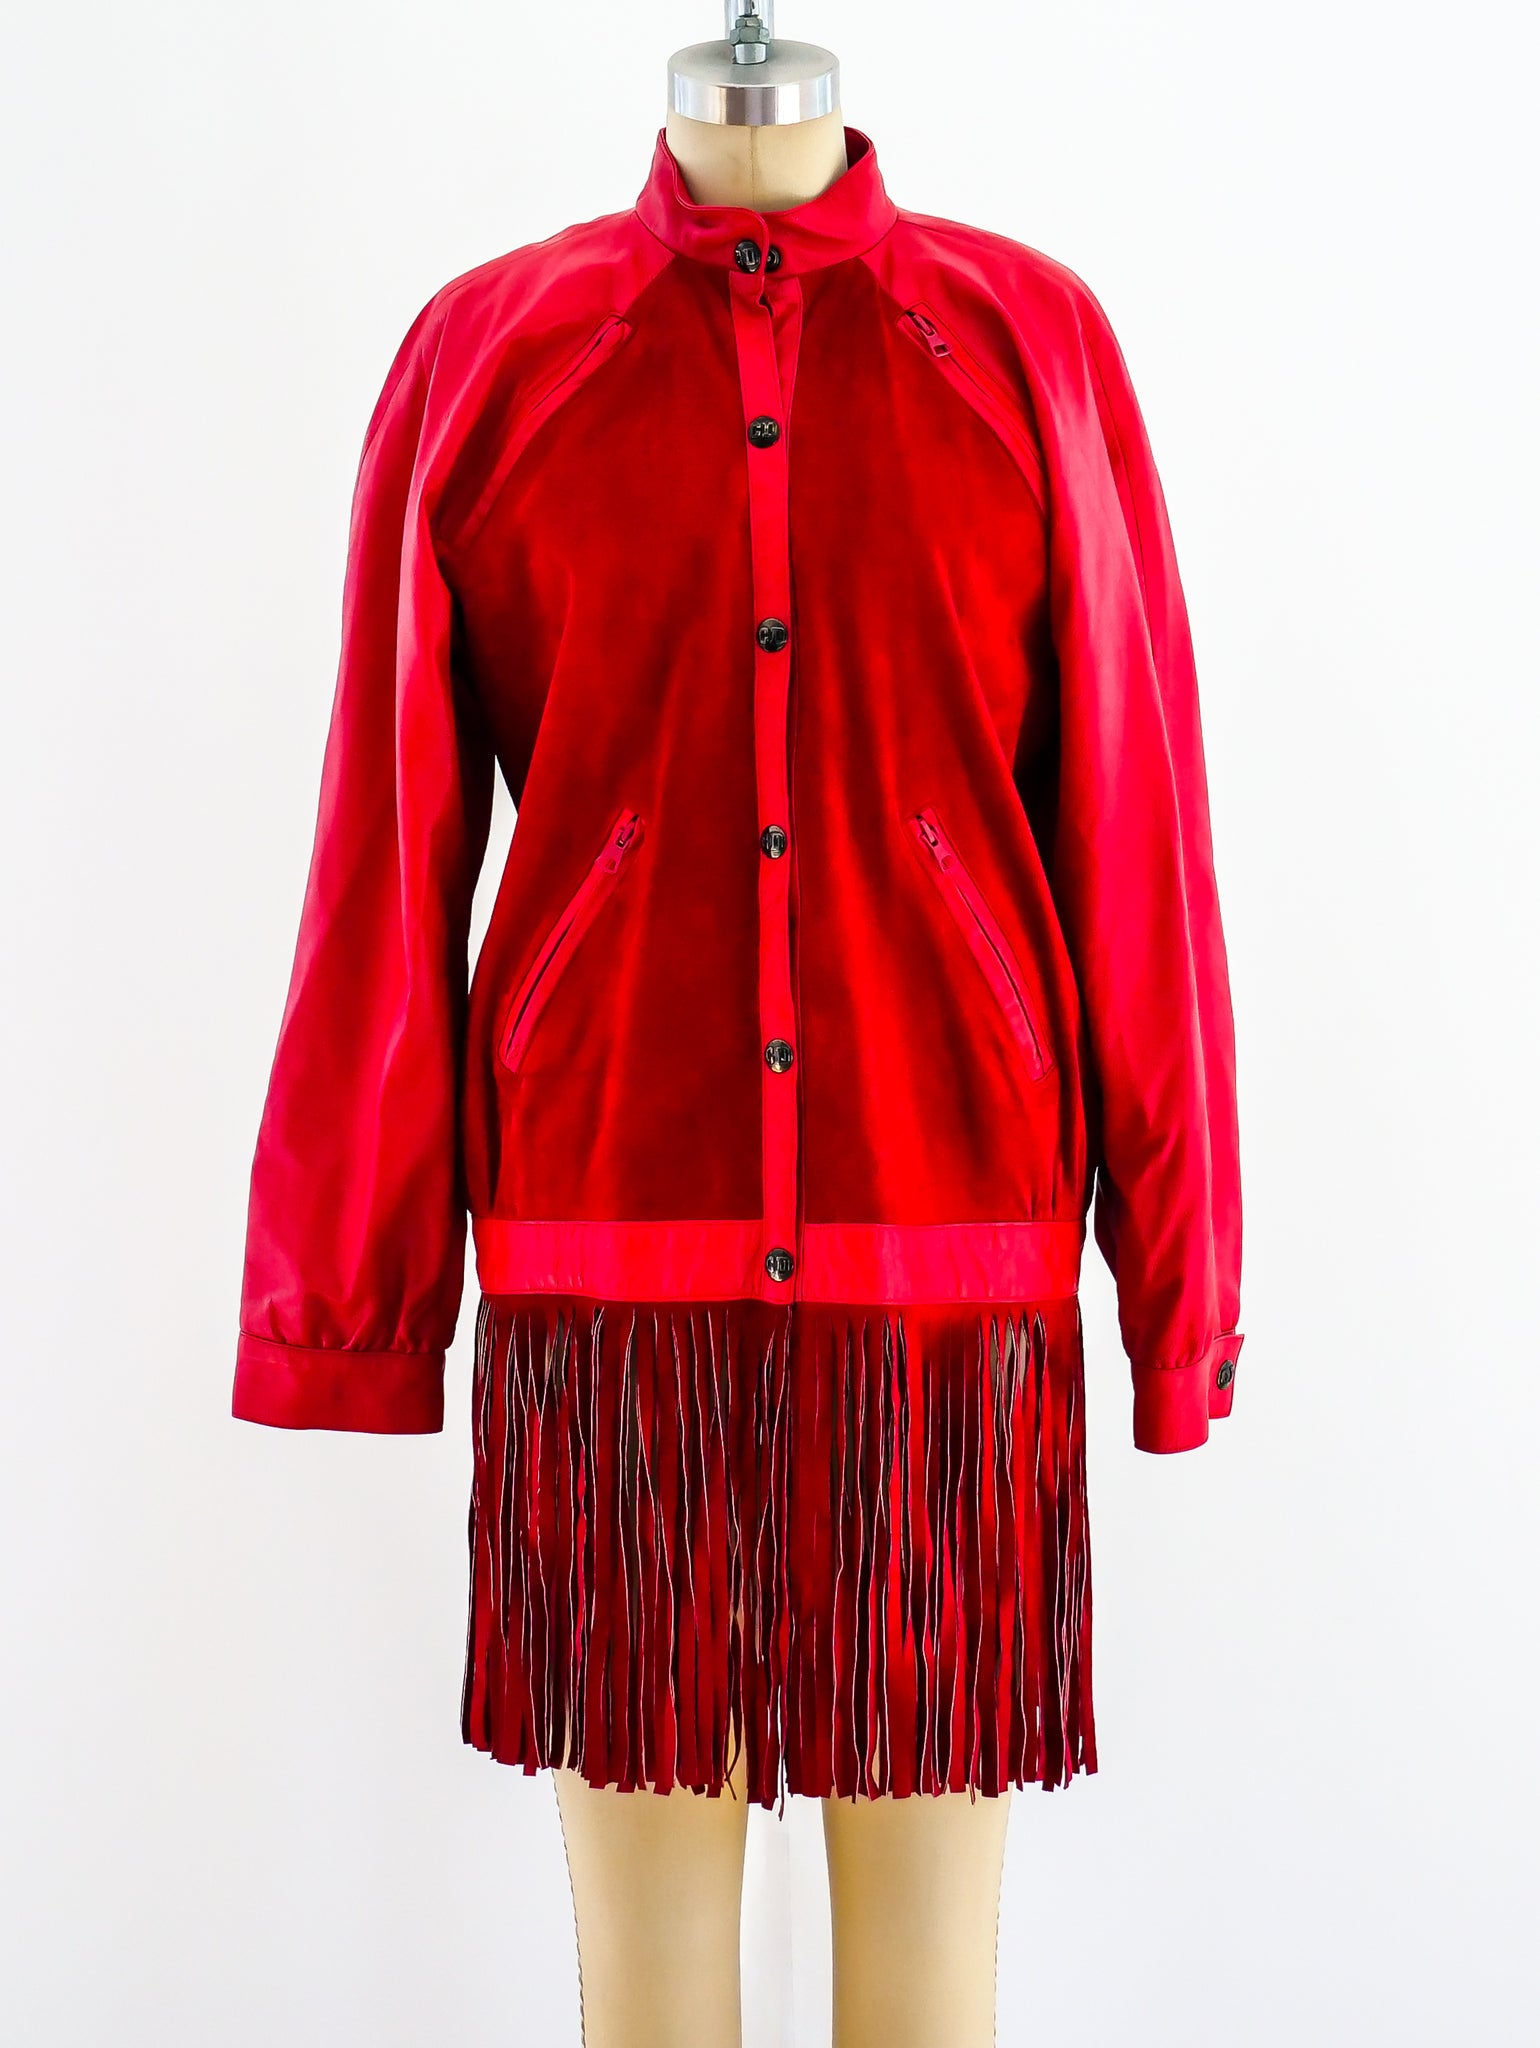 Christian Dior Fringed Leather and Suede Jacket